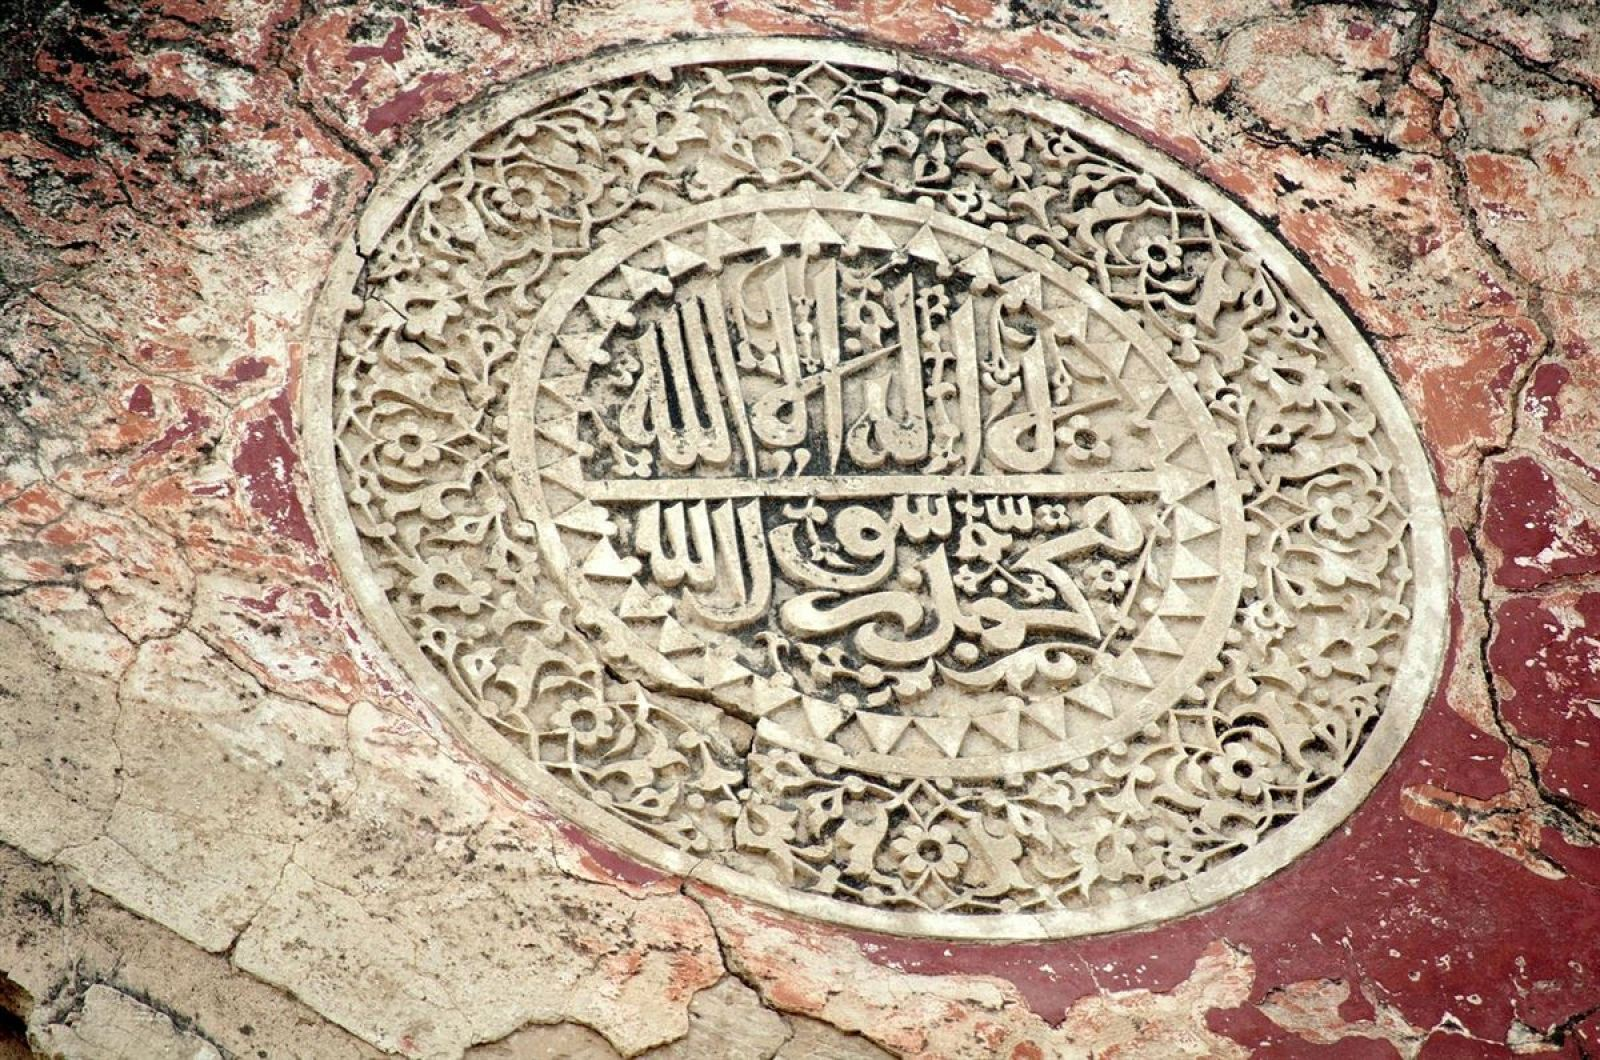 Details_of_calligraphy_on_a_pendentive,_Humayun's_Tomb_complex